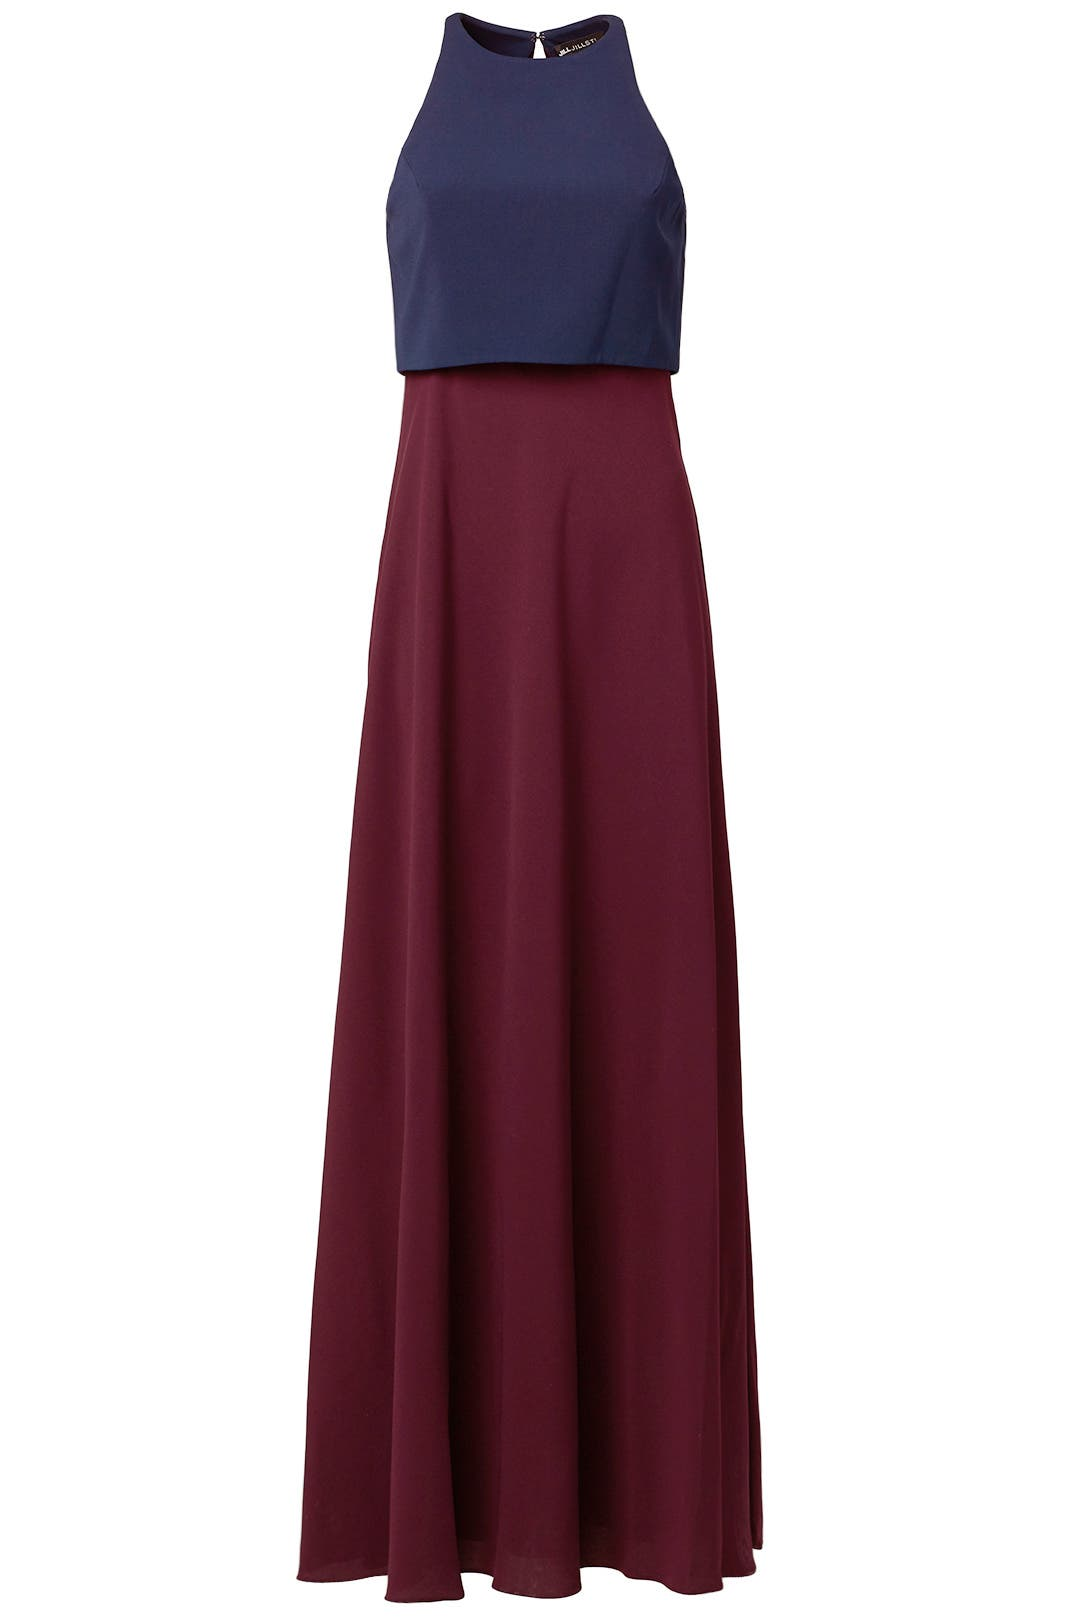 Us Area Code Map 206%0A Color Code Gown by Jill Jill Stuart